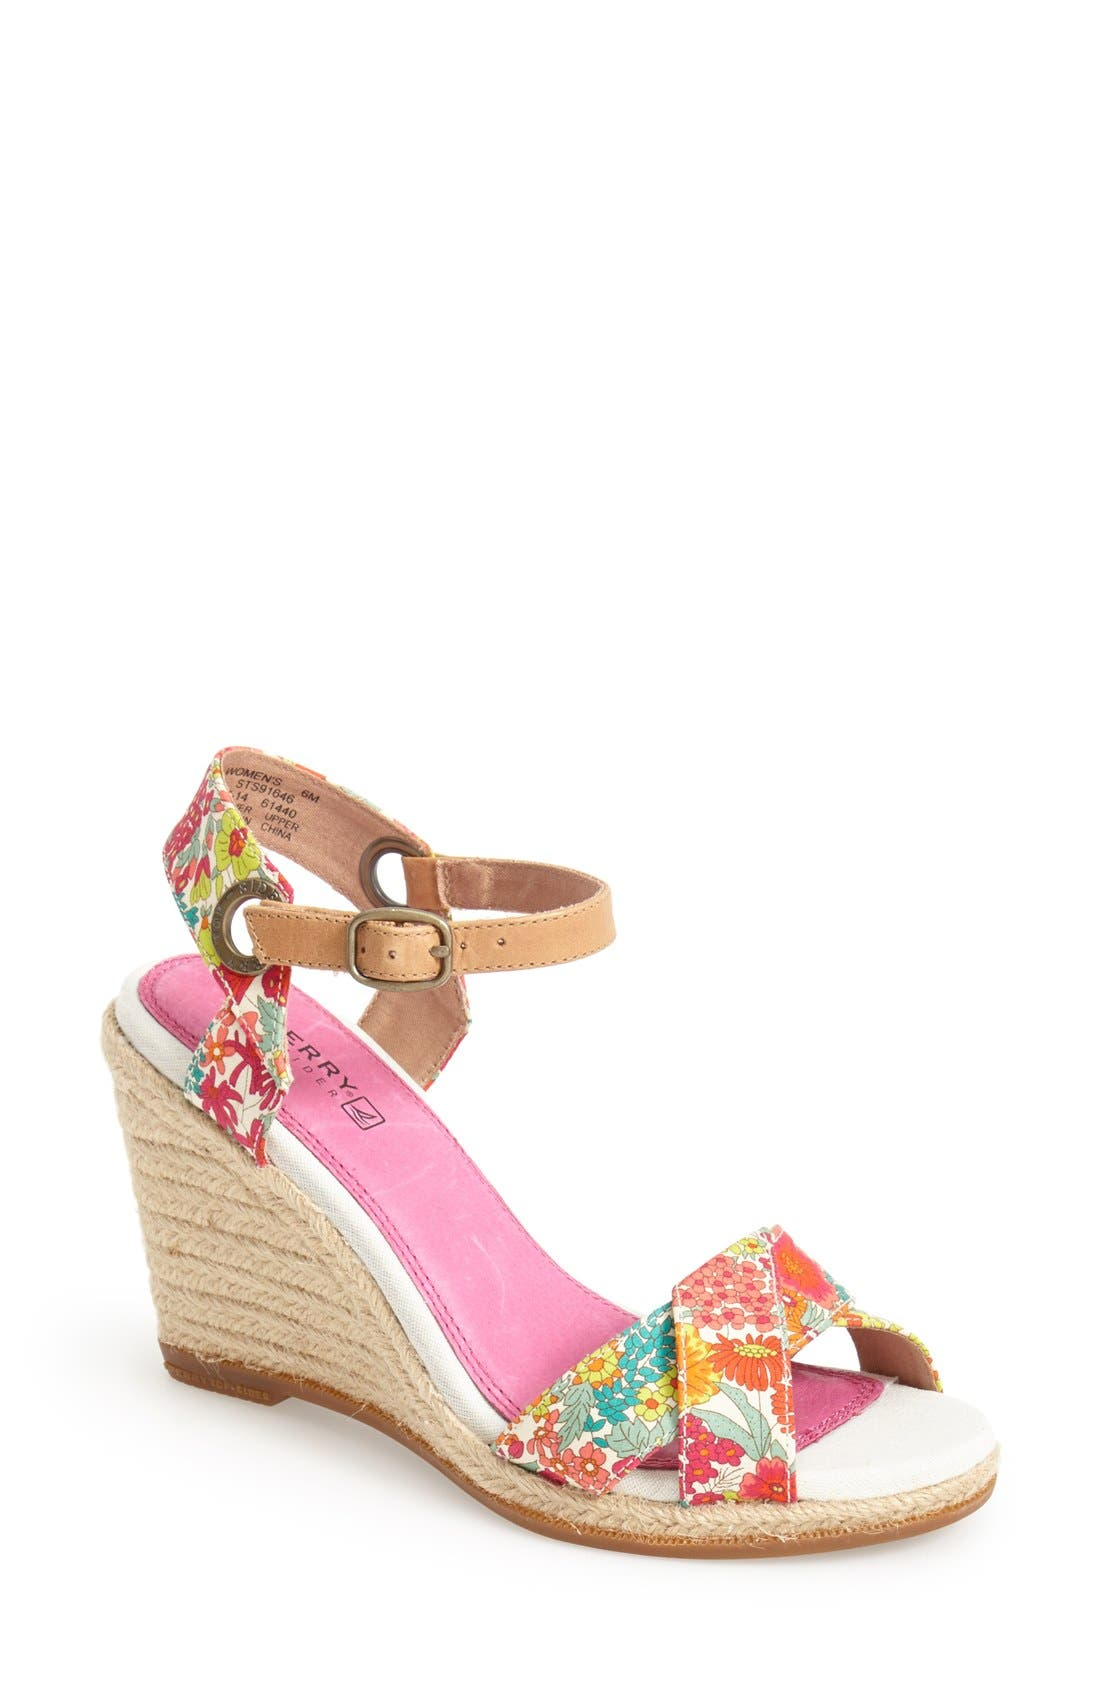 Alternate Image 1 Selected - Sperry 'Saylor' Espadrille Wedge Sandal (Women)